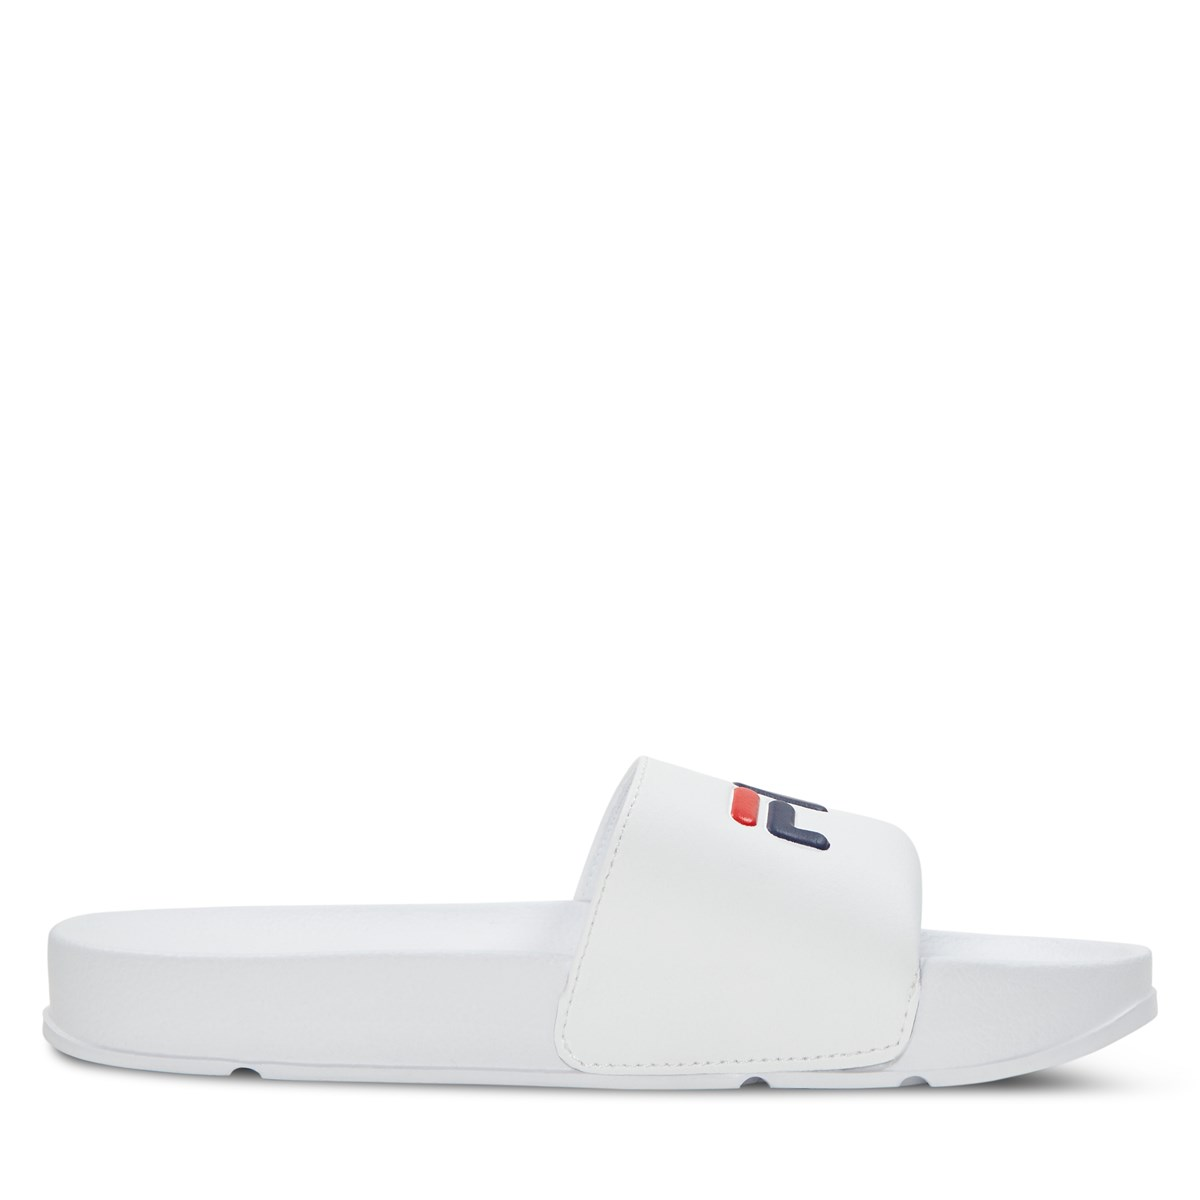 Women's Drifter Slide Sandal in White